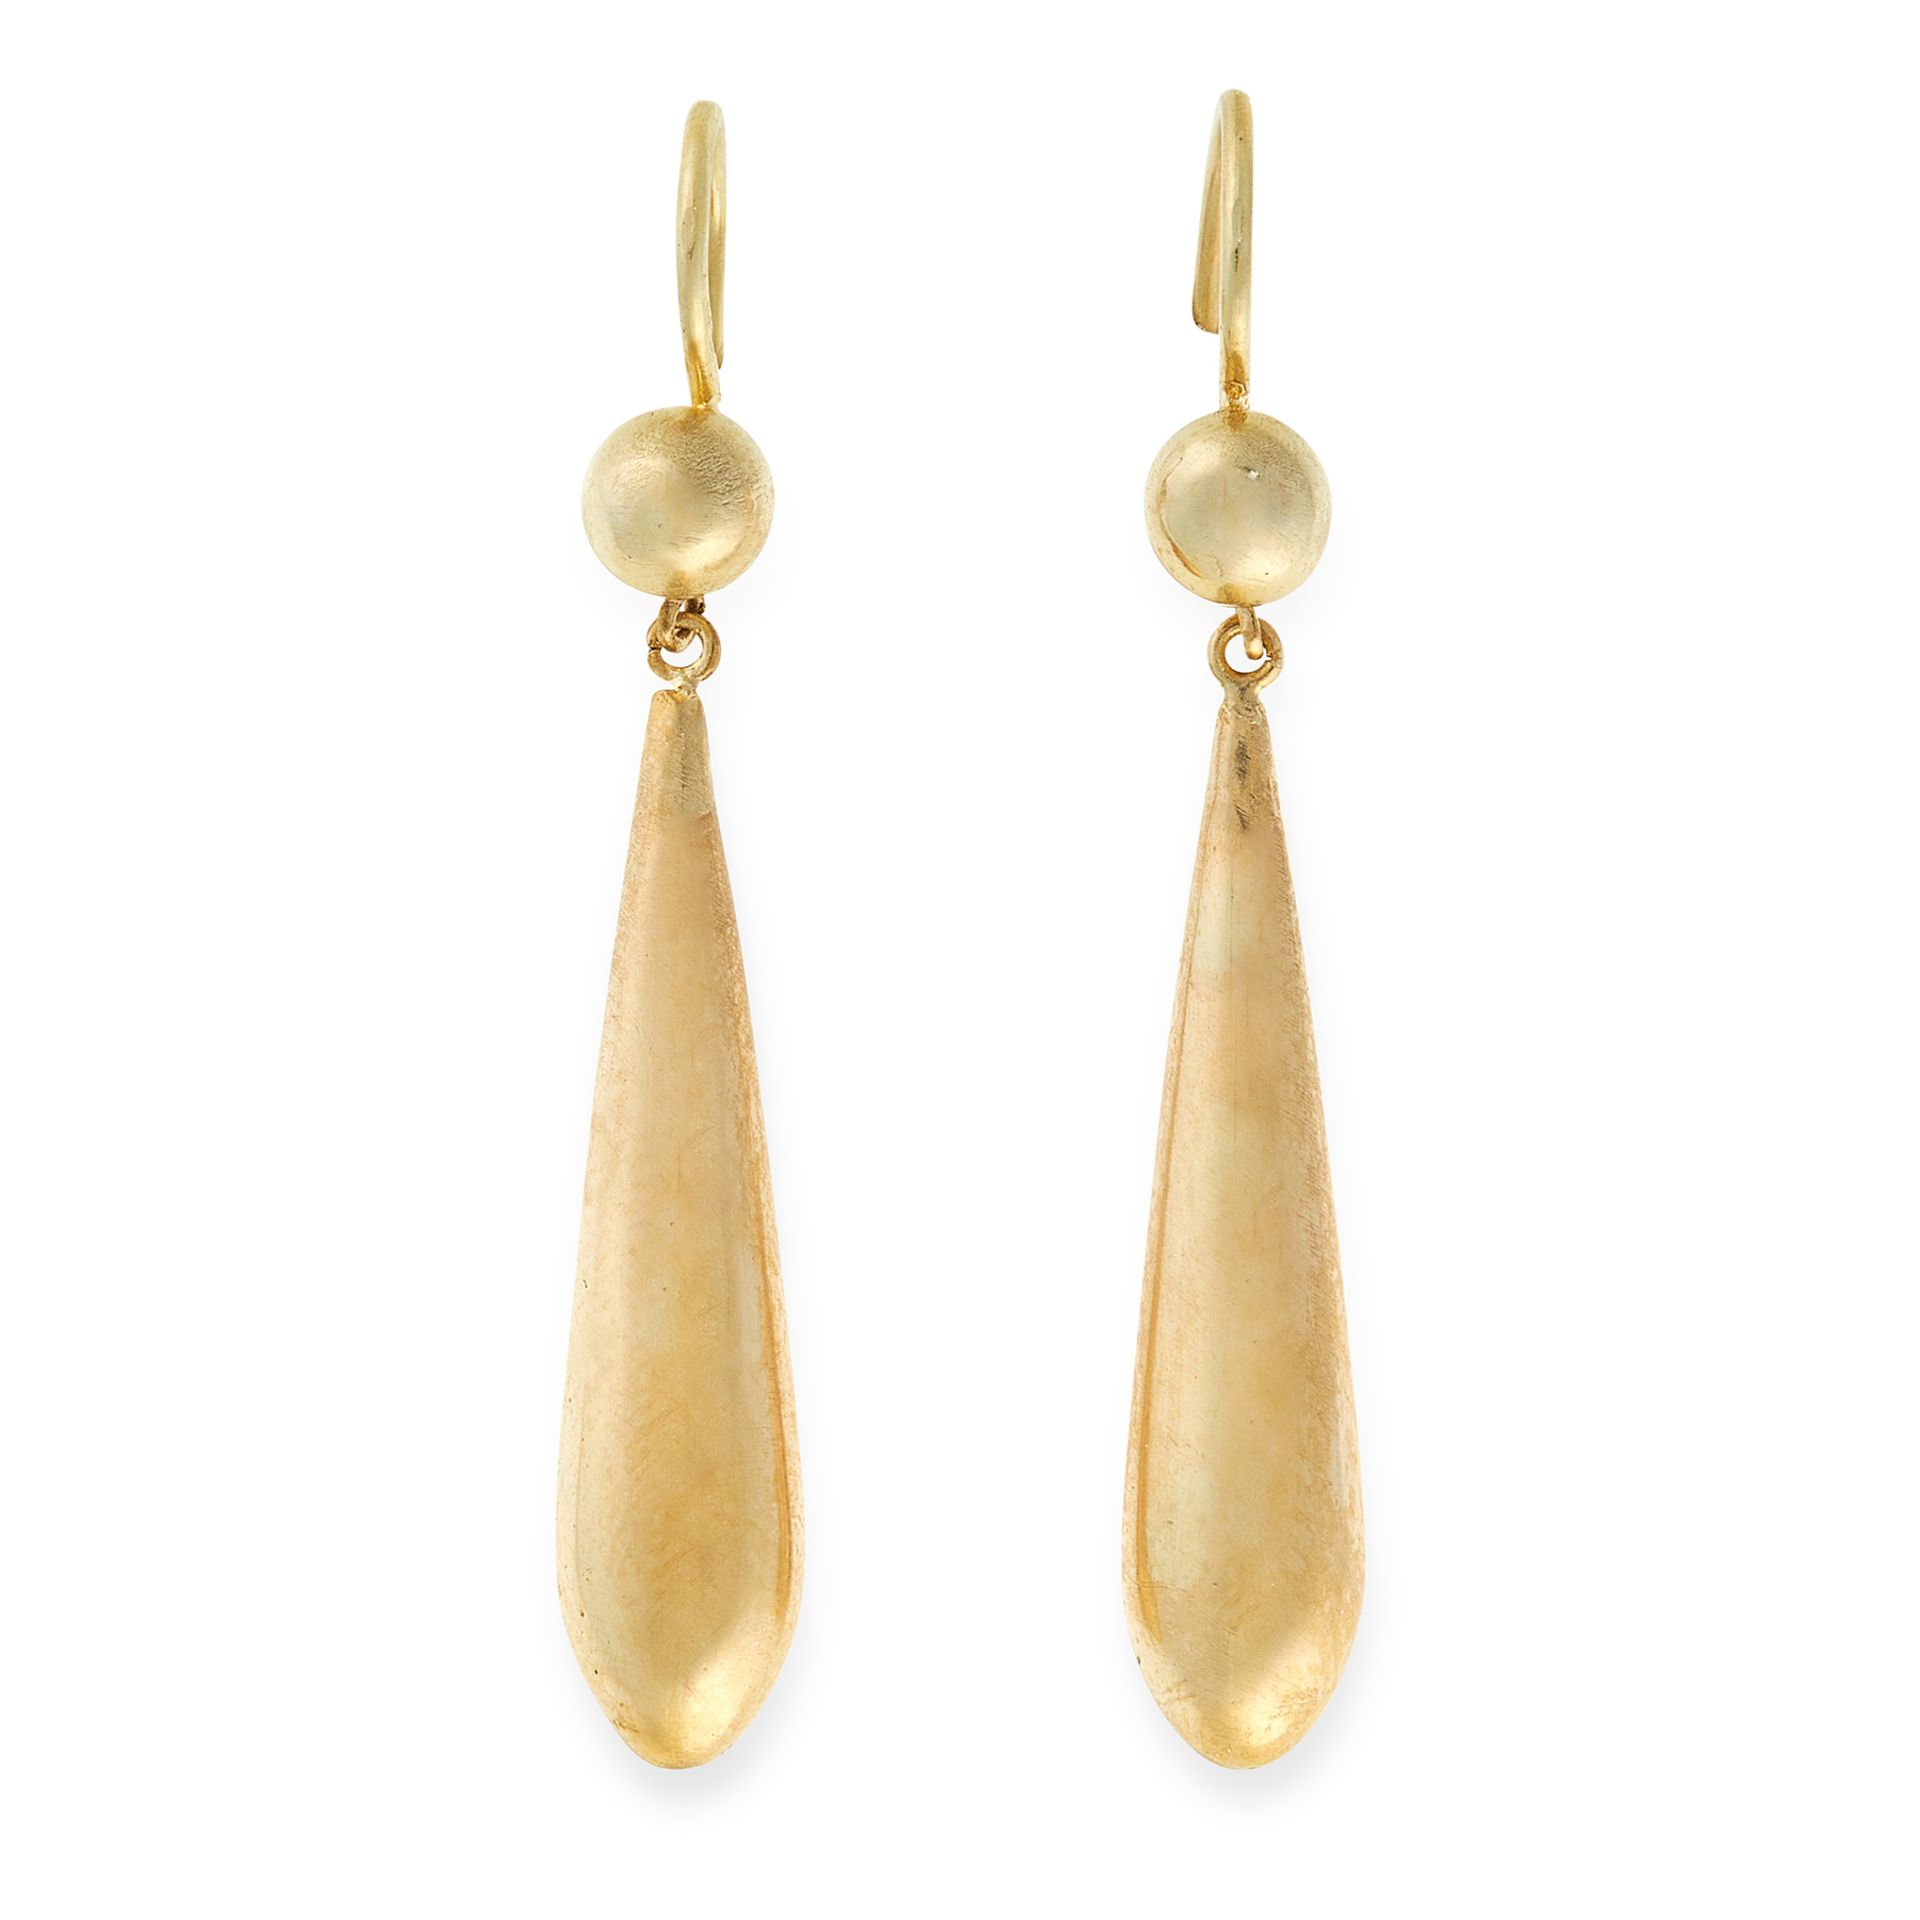 A PAIR OF ANTIQUE DROP EARRINGS, 19TH CENTURY in yellow gold, each comprising a gold ball suspending